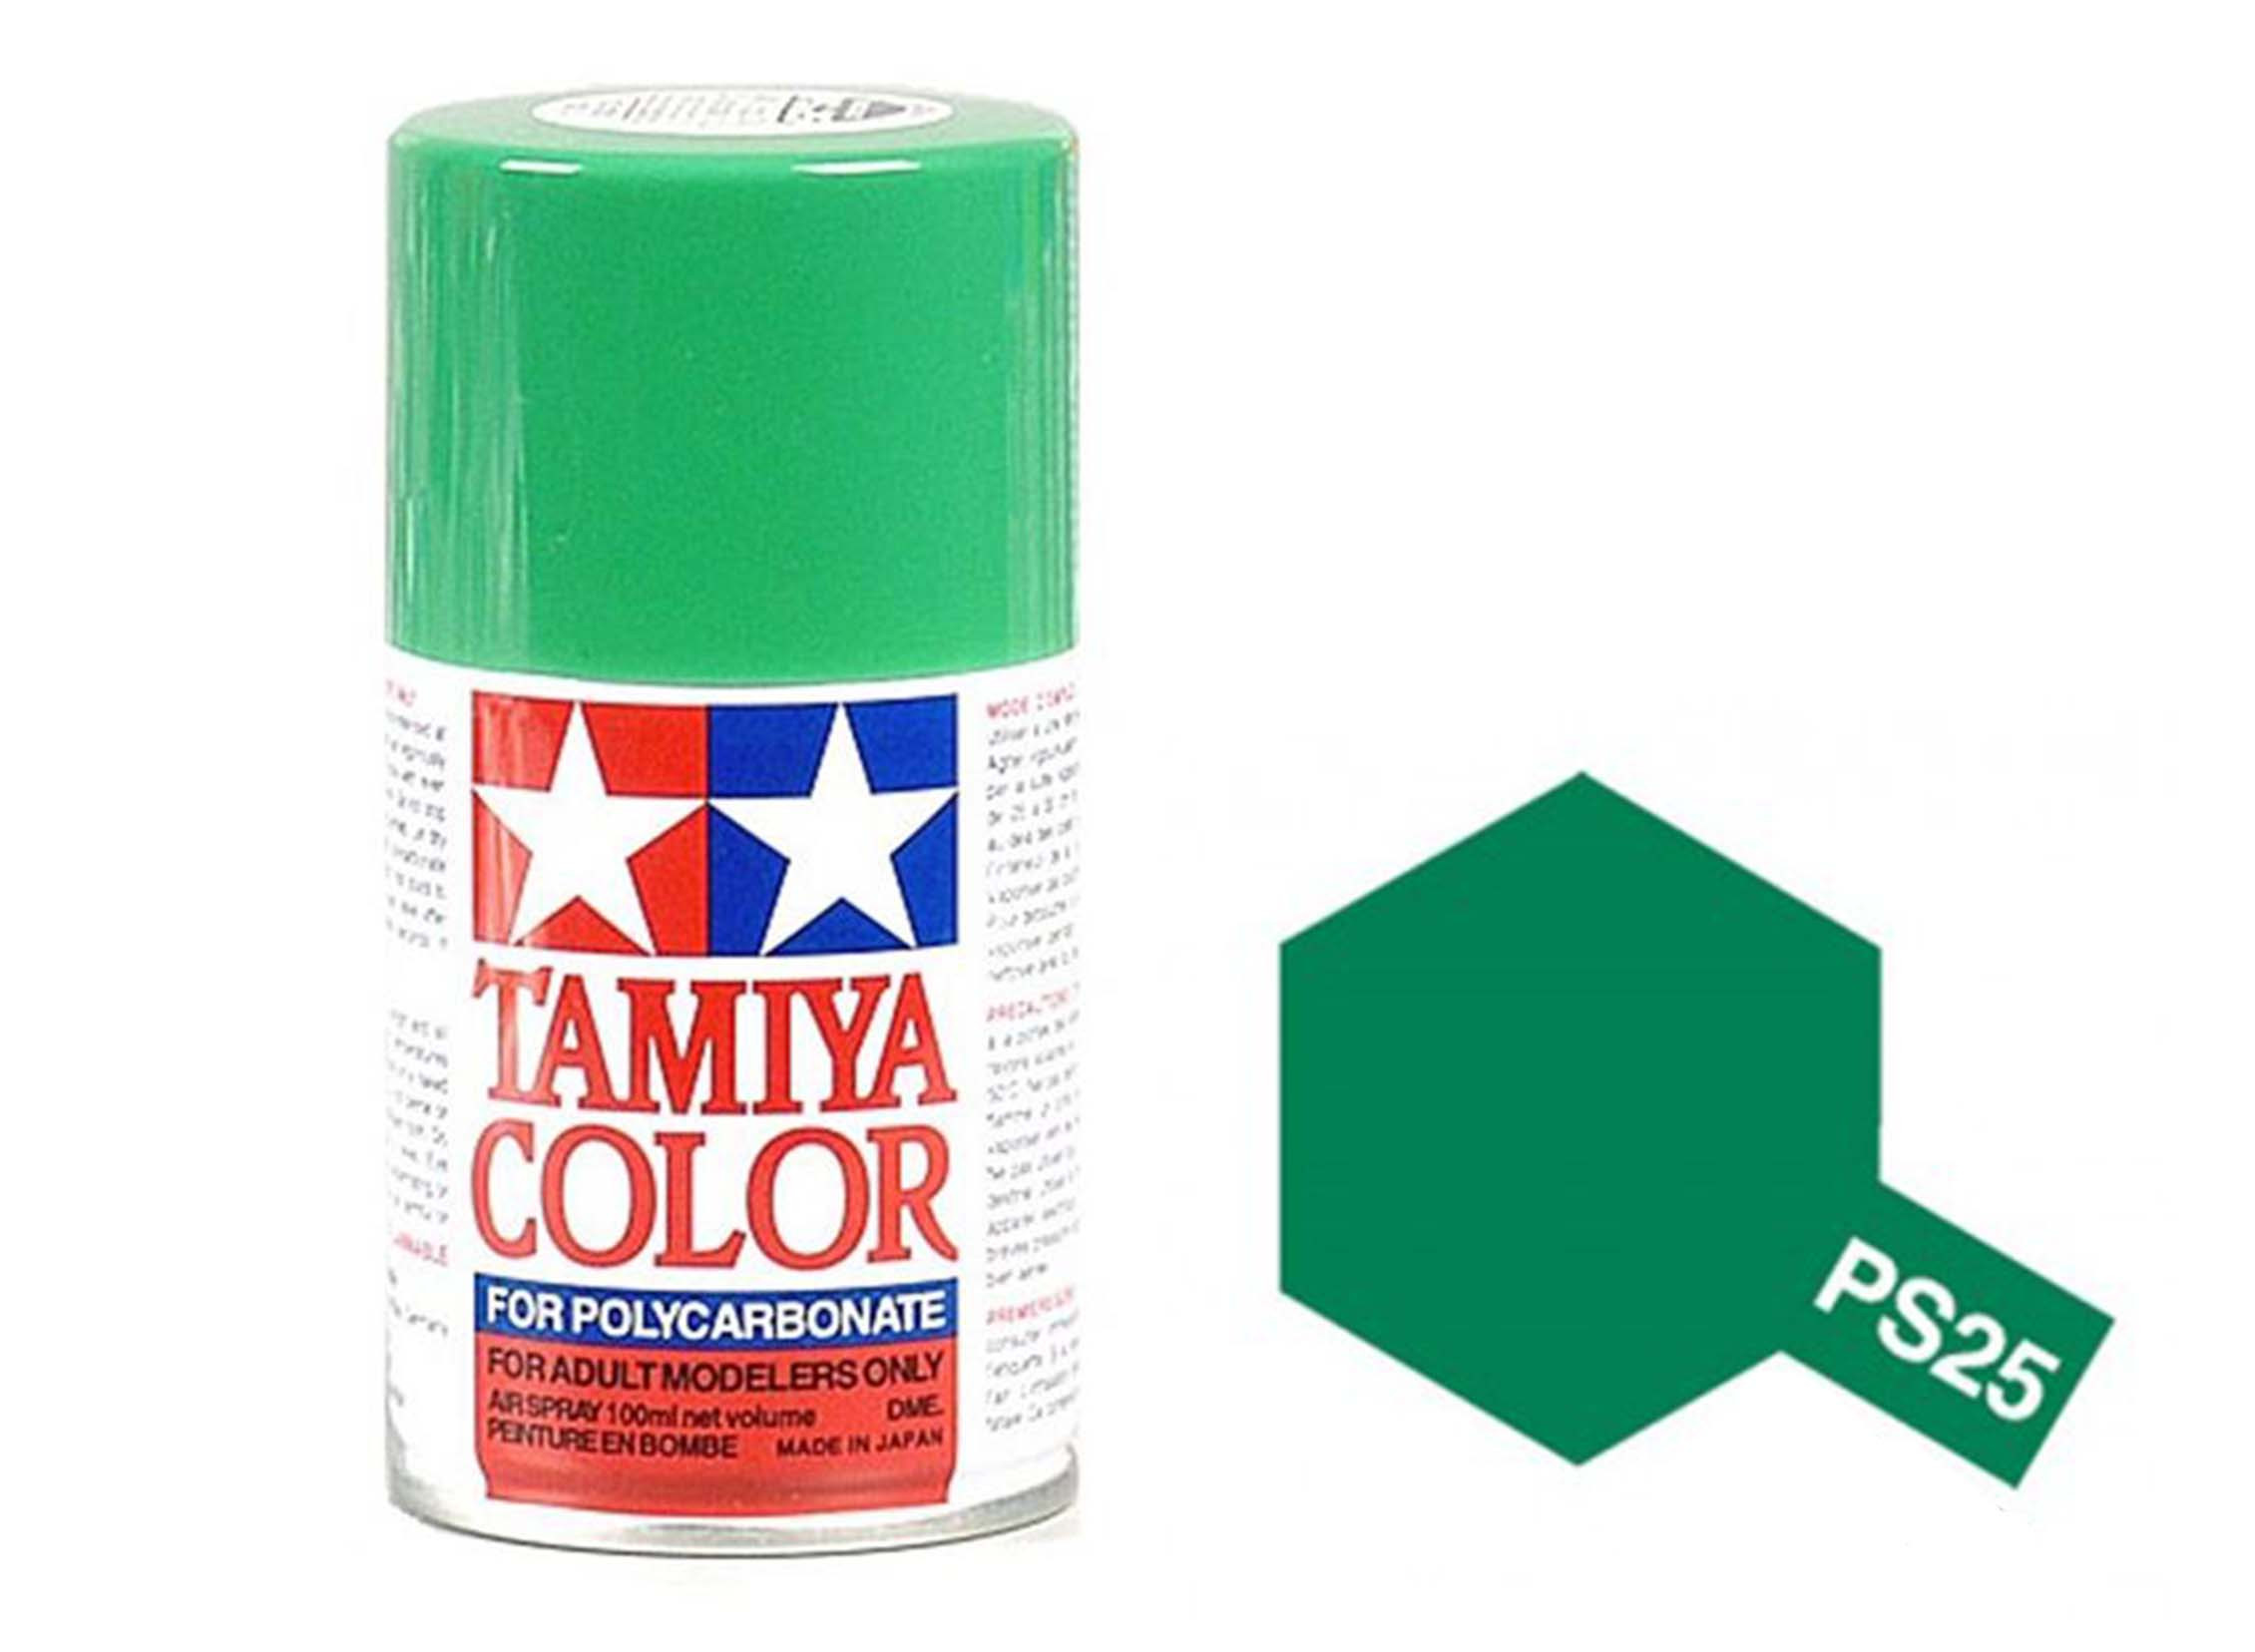 3eacc16302da4 Tamiya Color Paints for Polycarbonate PS-25 Bright Green Spray Paint (100ml)